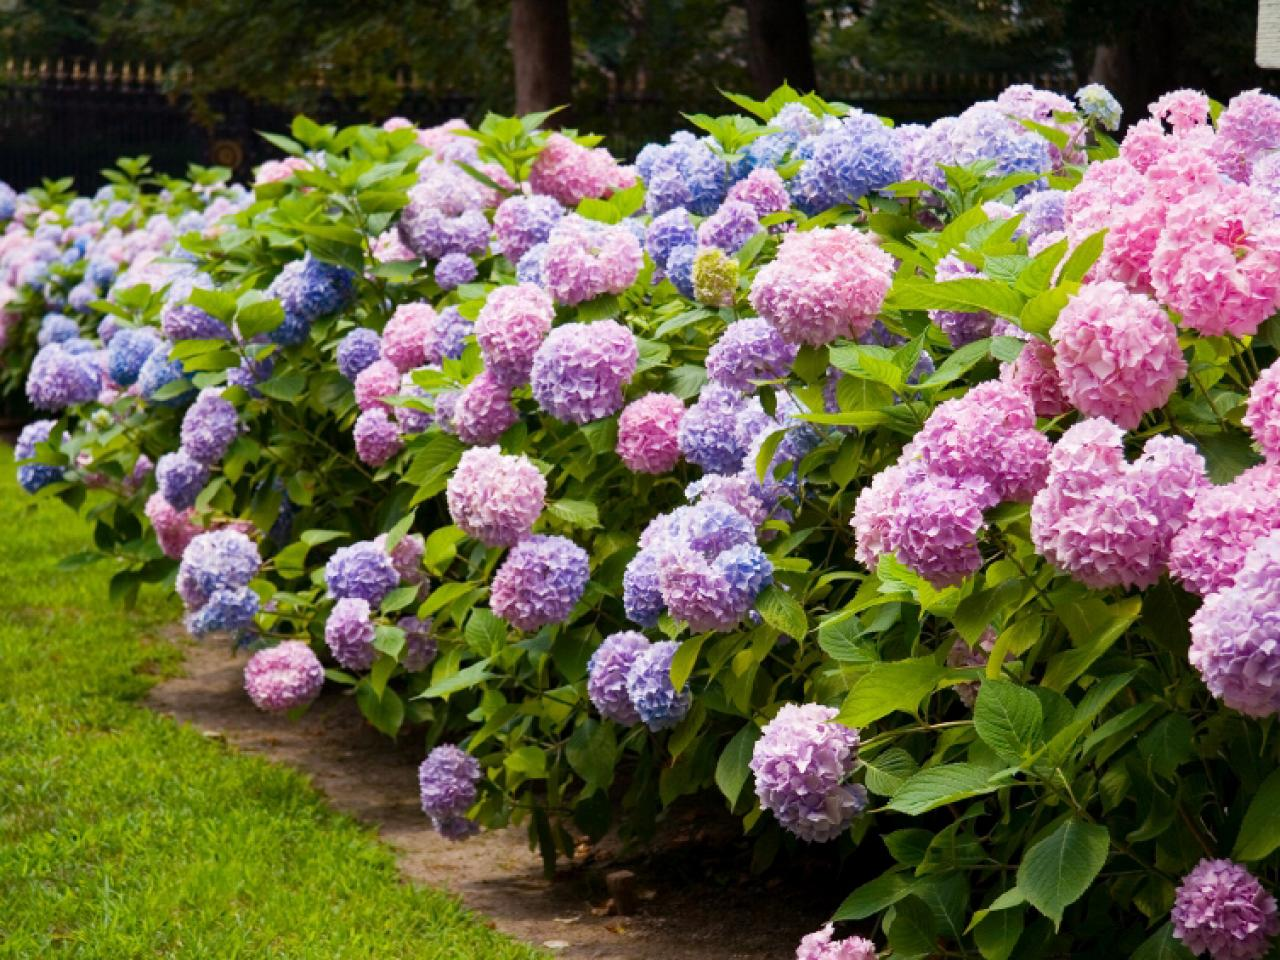 Hydrangea HD wallpapers, Desktop wallpaper - most viewed